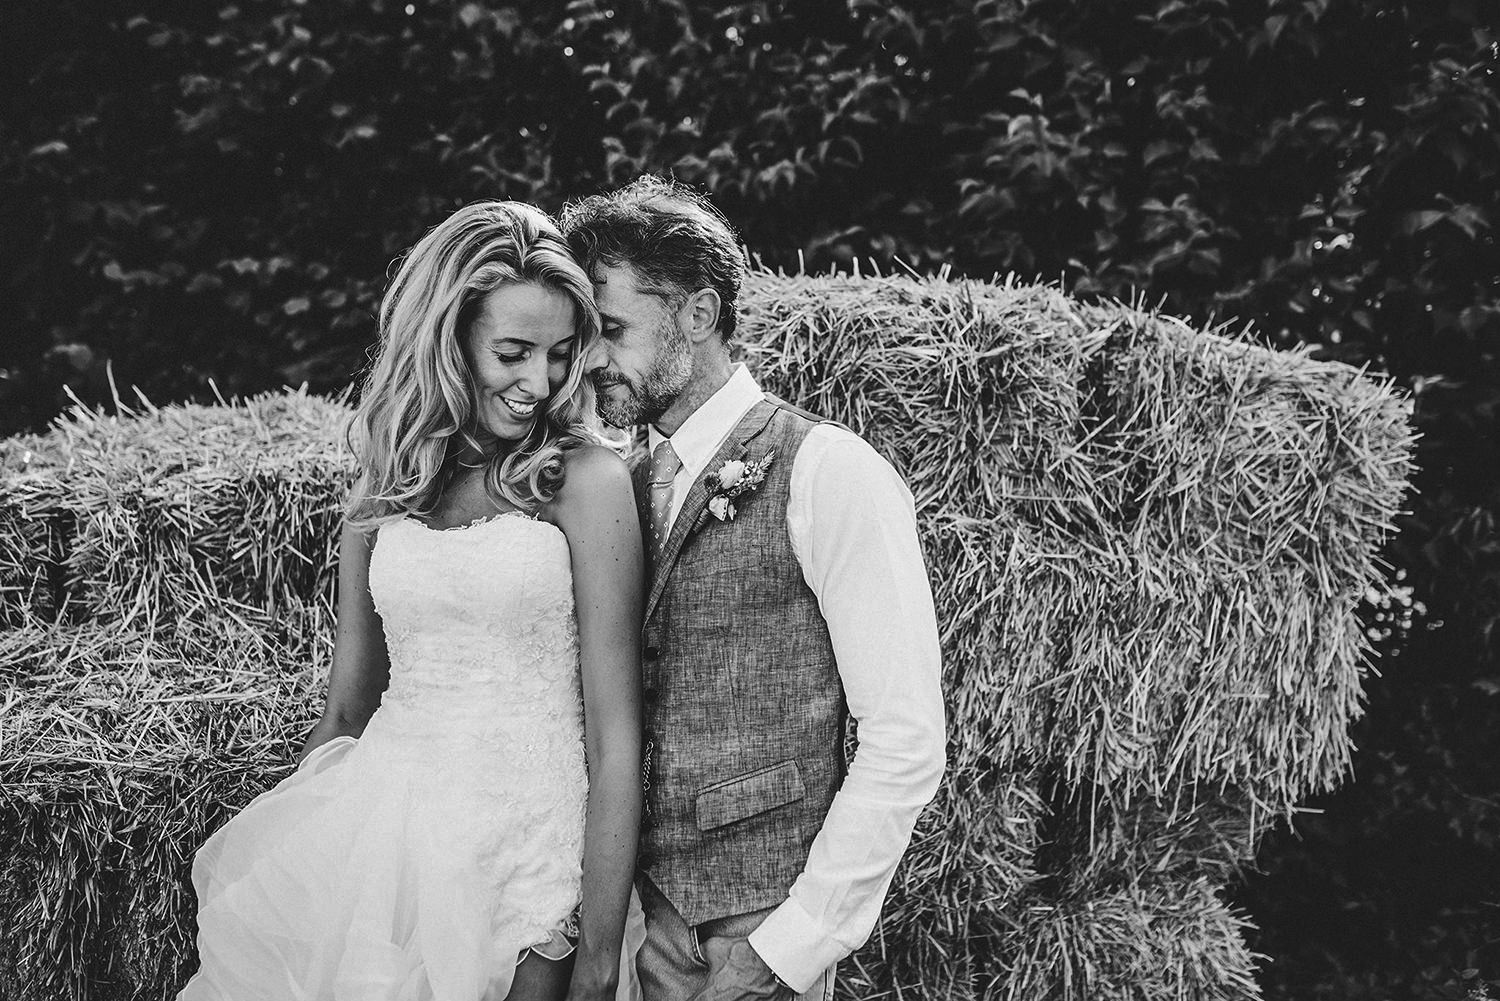 buckettsland-farm-wedding-photographer-st-albans-wedding-hemel-wedding-photgraphy.jpg